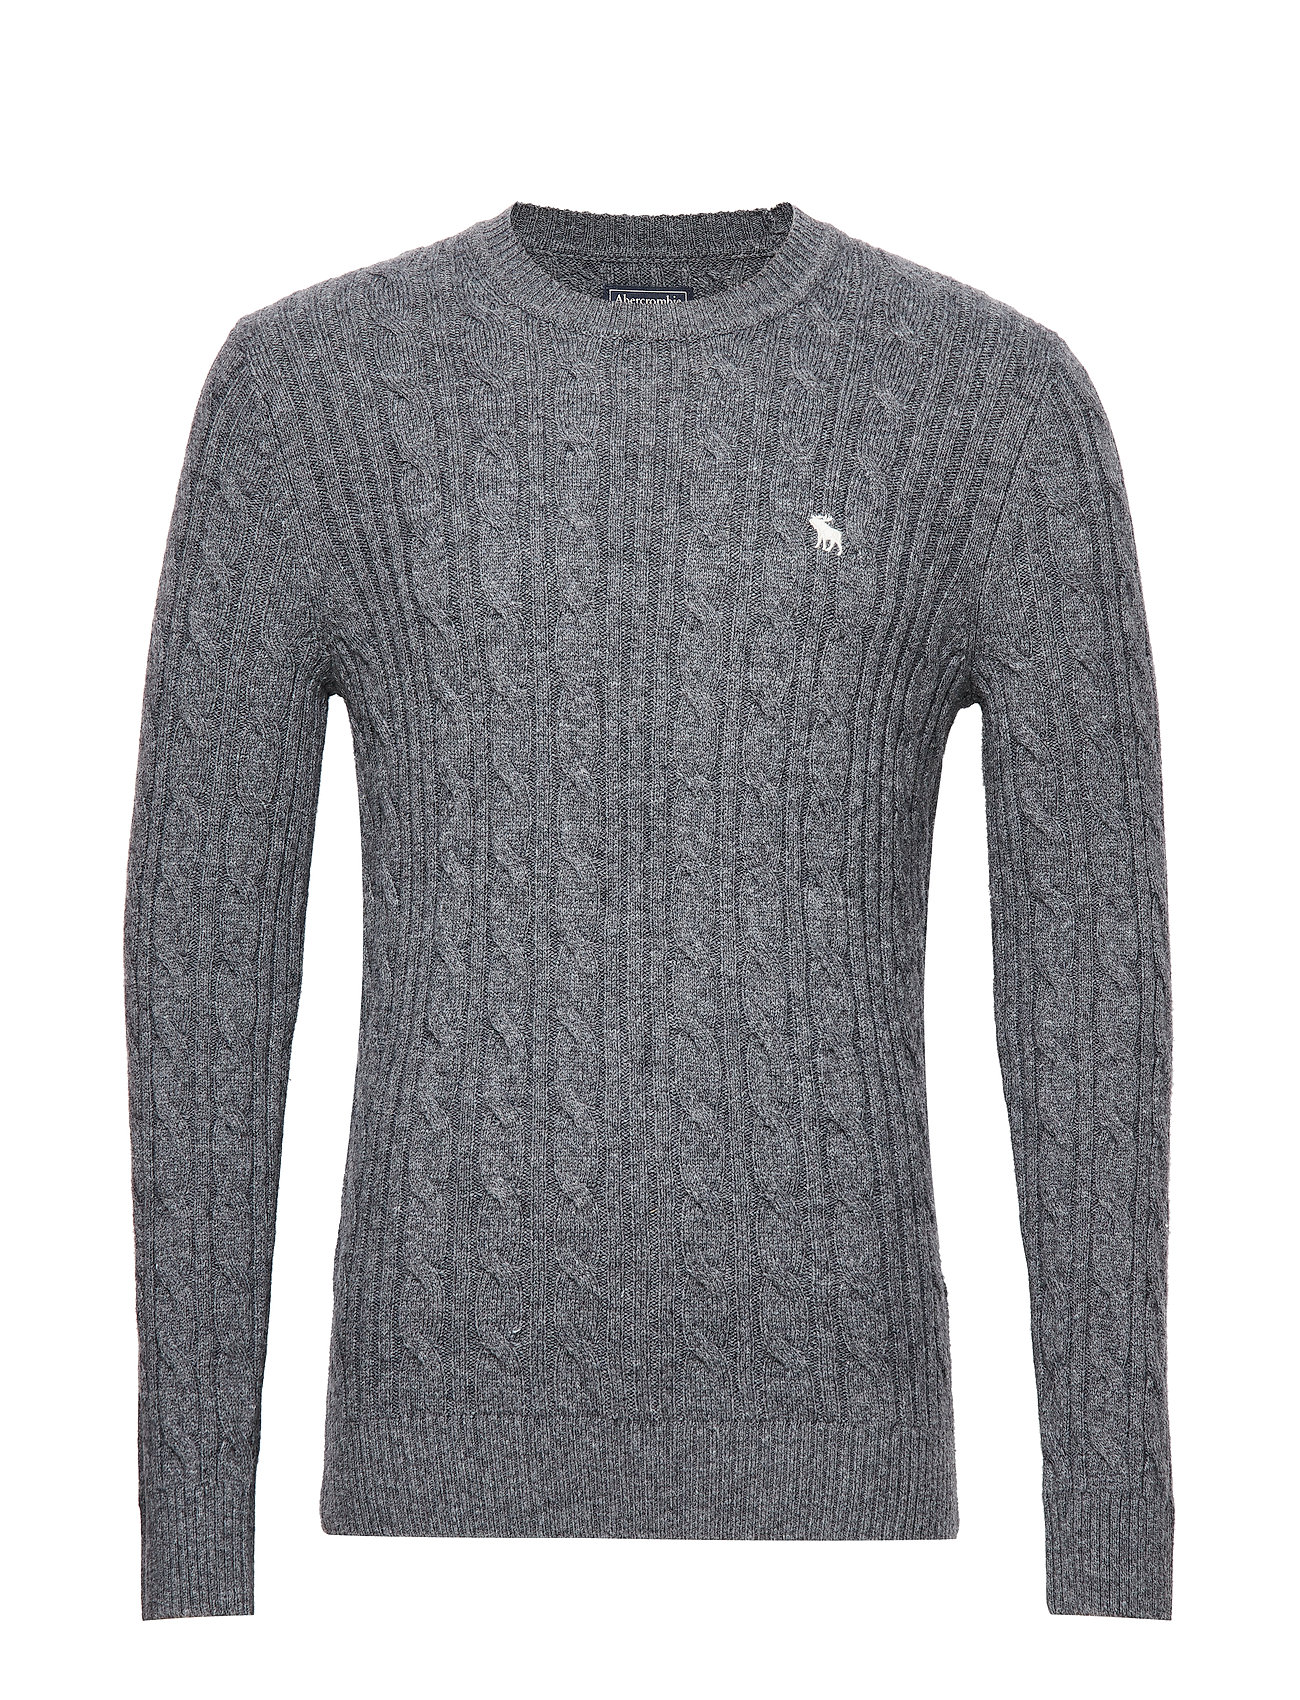 Abercrombie & Fitch Cable Crew Sweater - DARK GREY FLAT